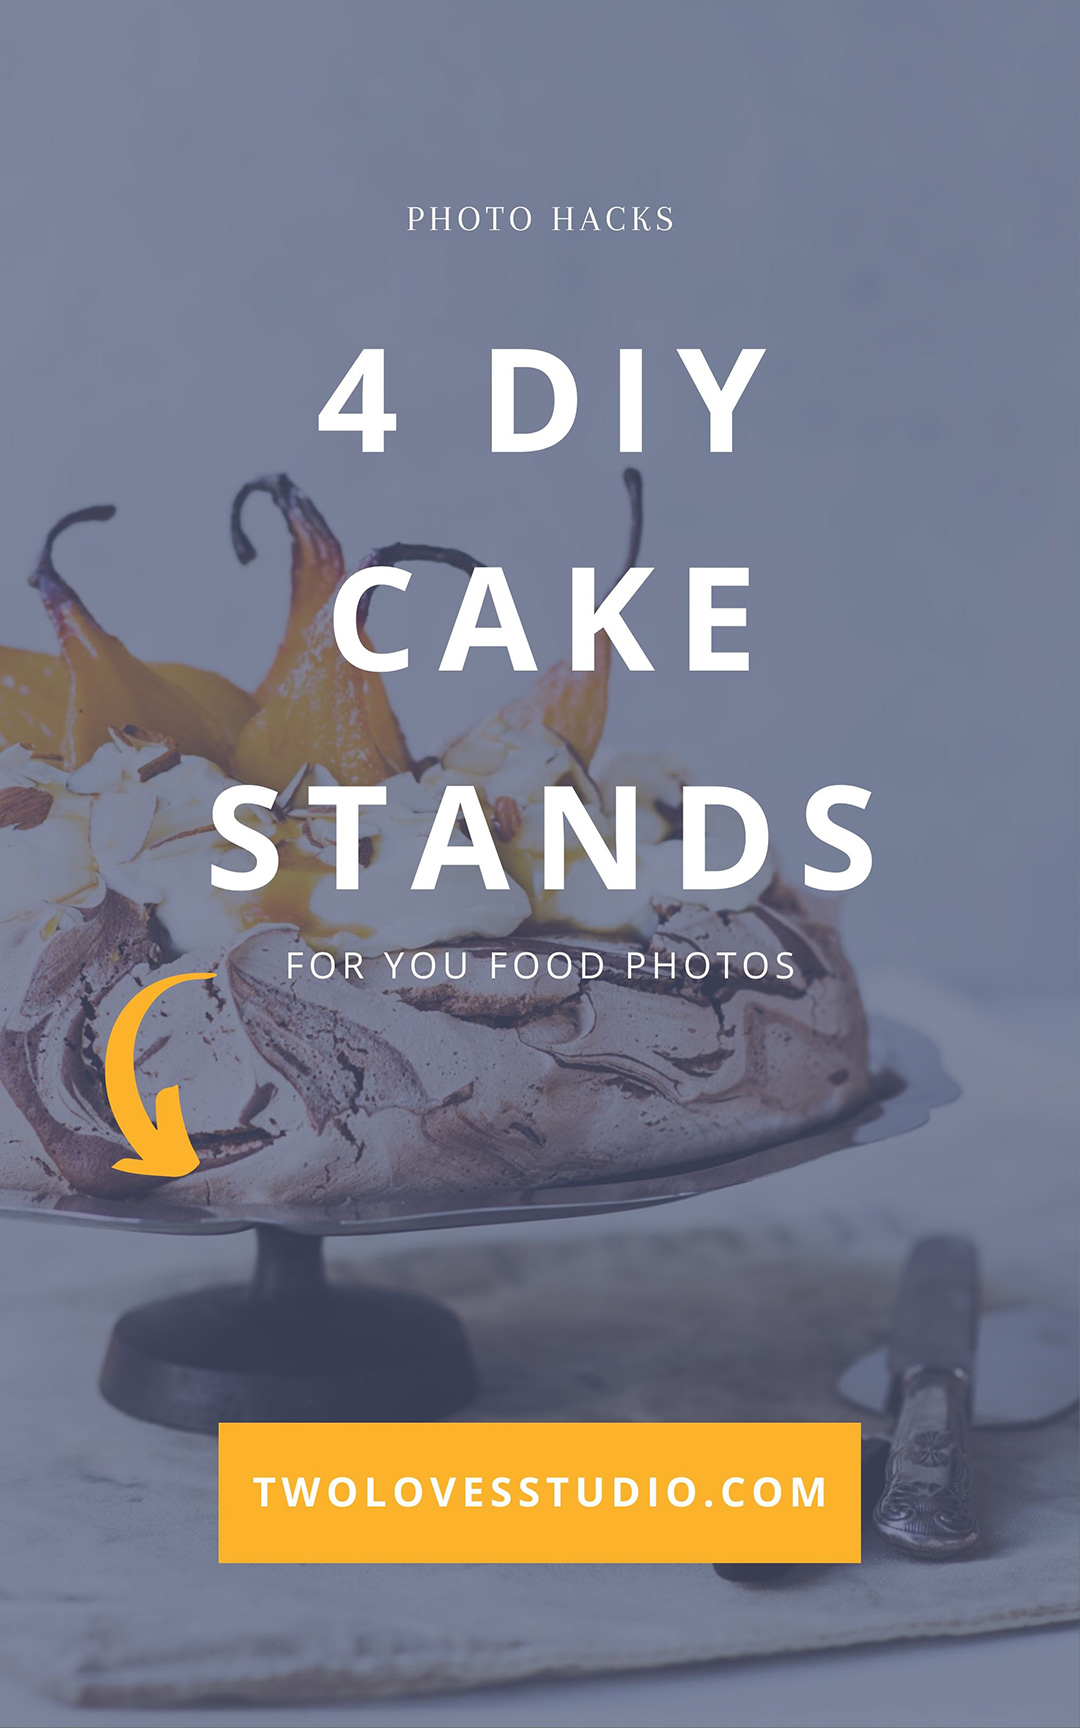 Chocolate swirl meringue on metal cake stand